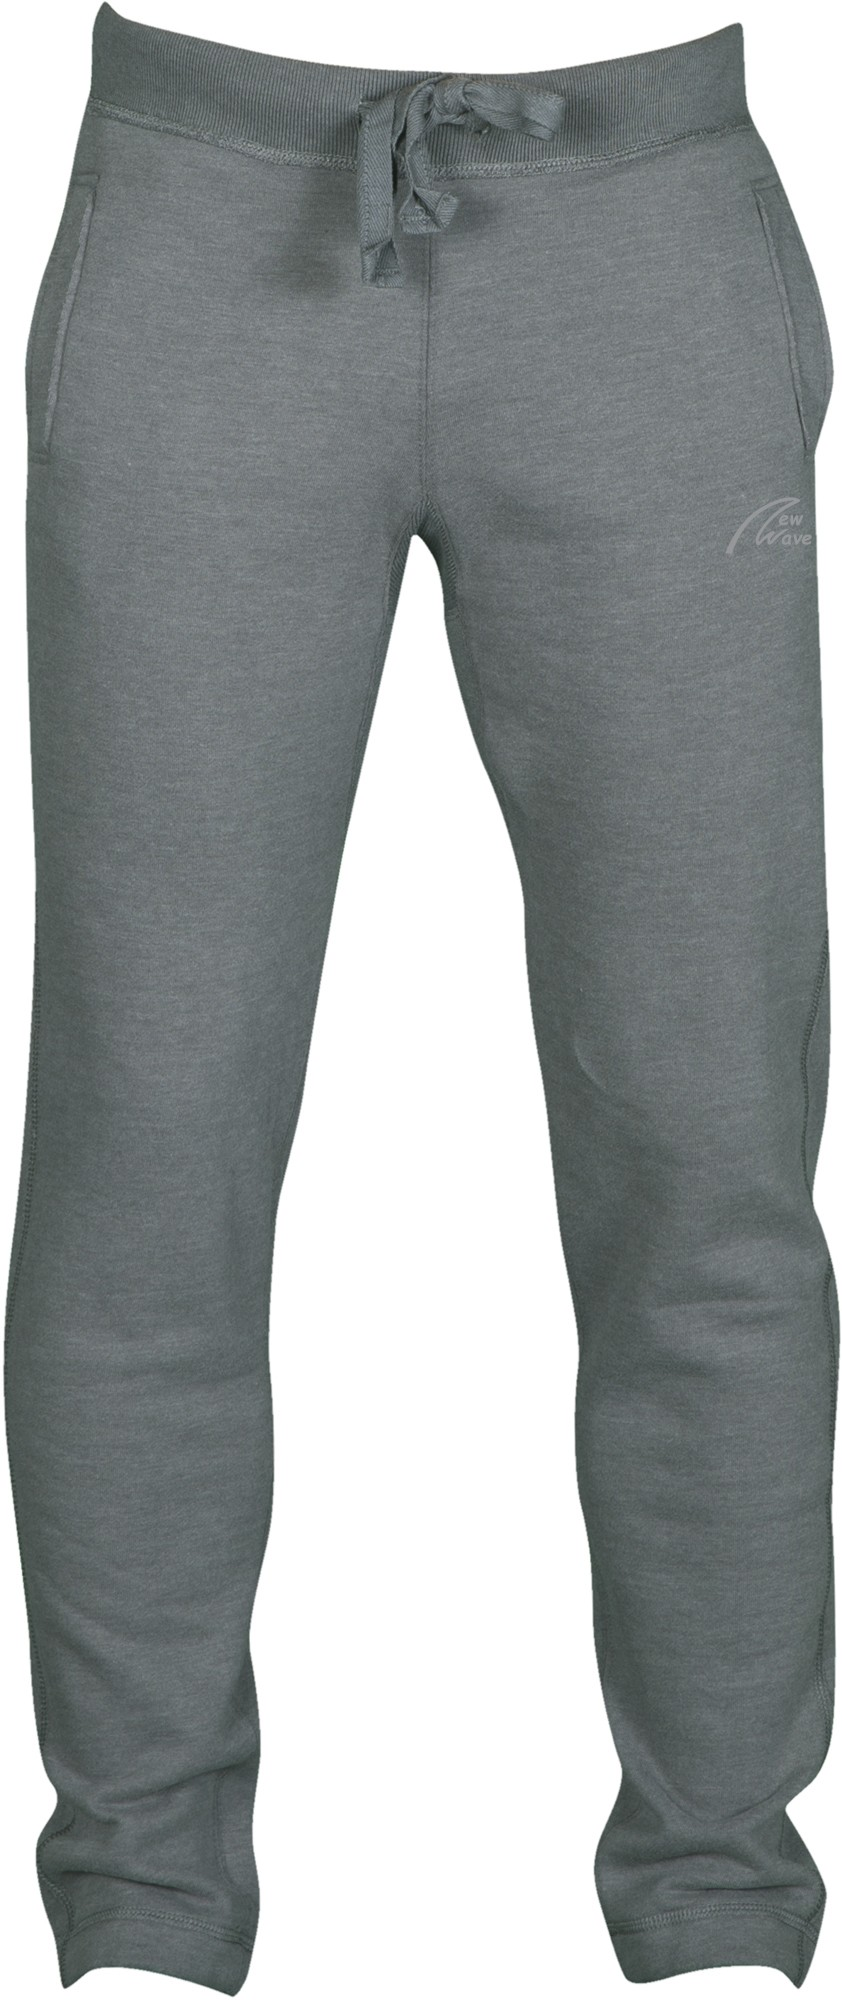 College Style Pants-steel grey